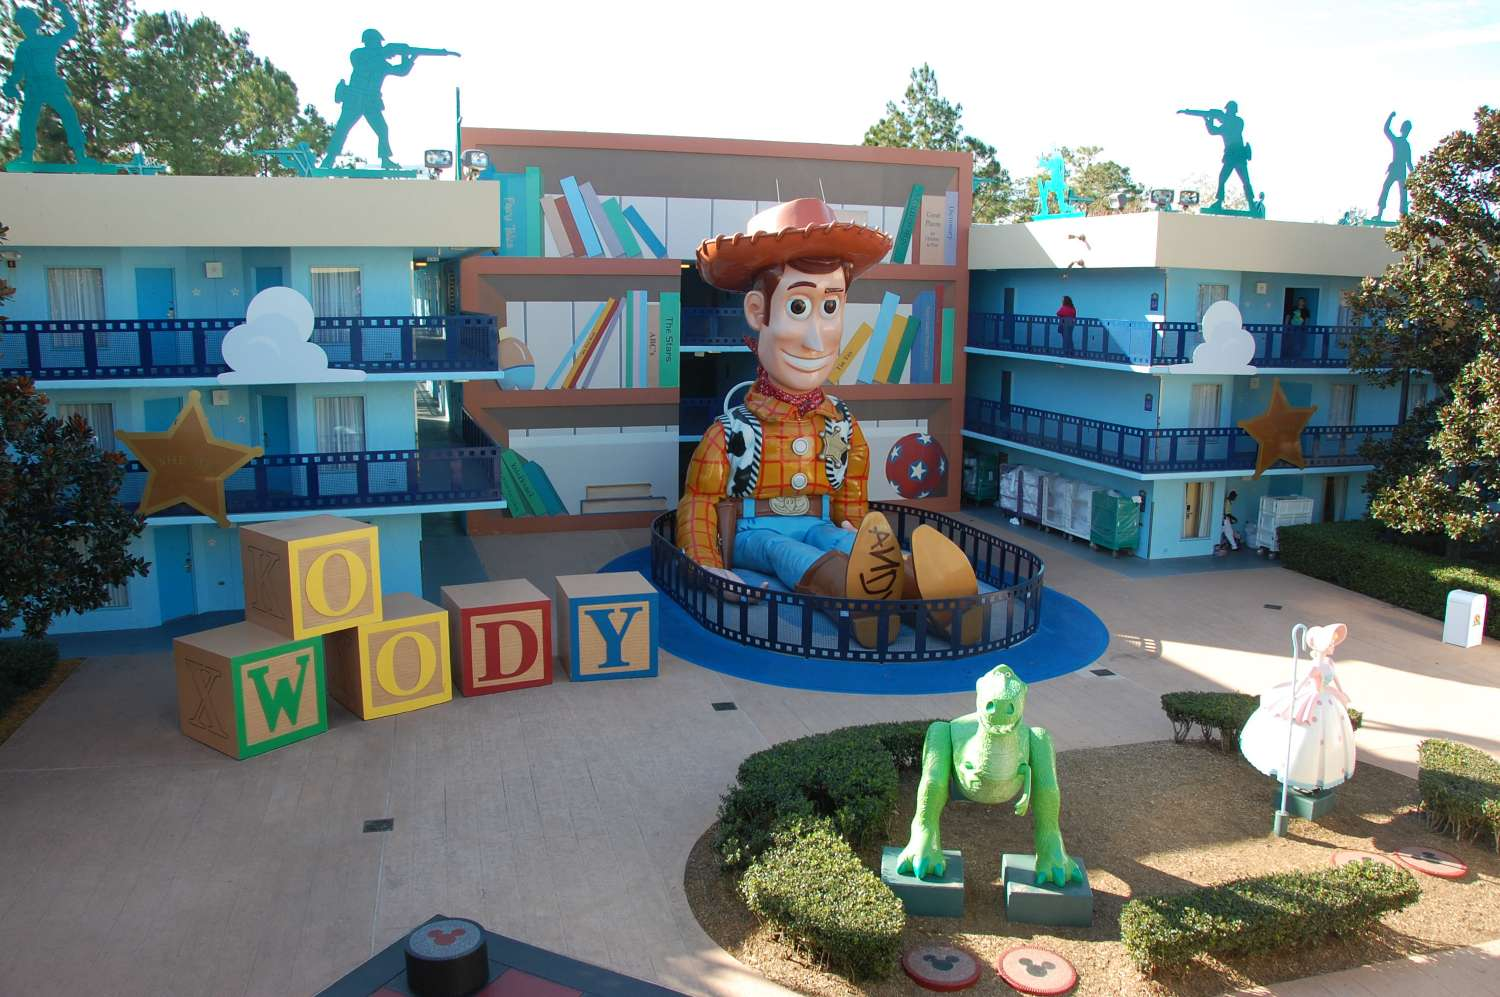 Woody building in the Toy Story section  at Disney's All-Star Movies Resort